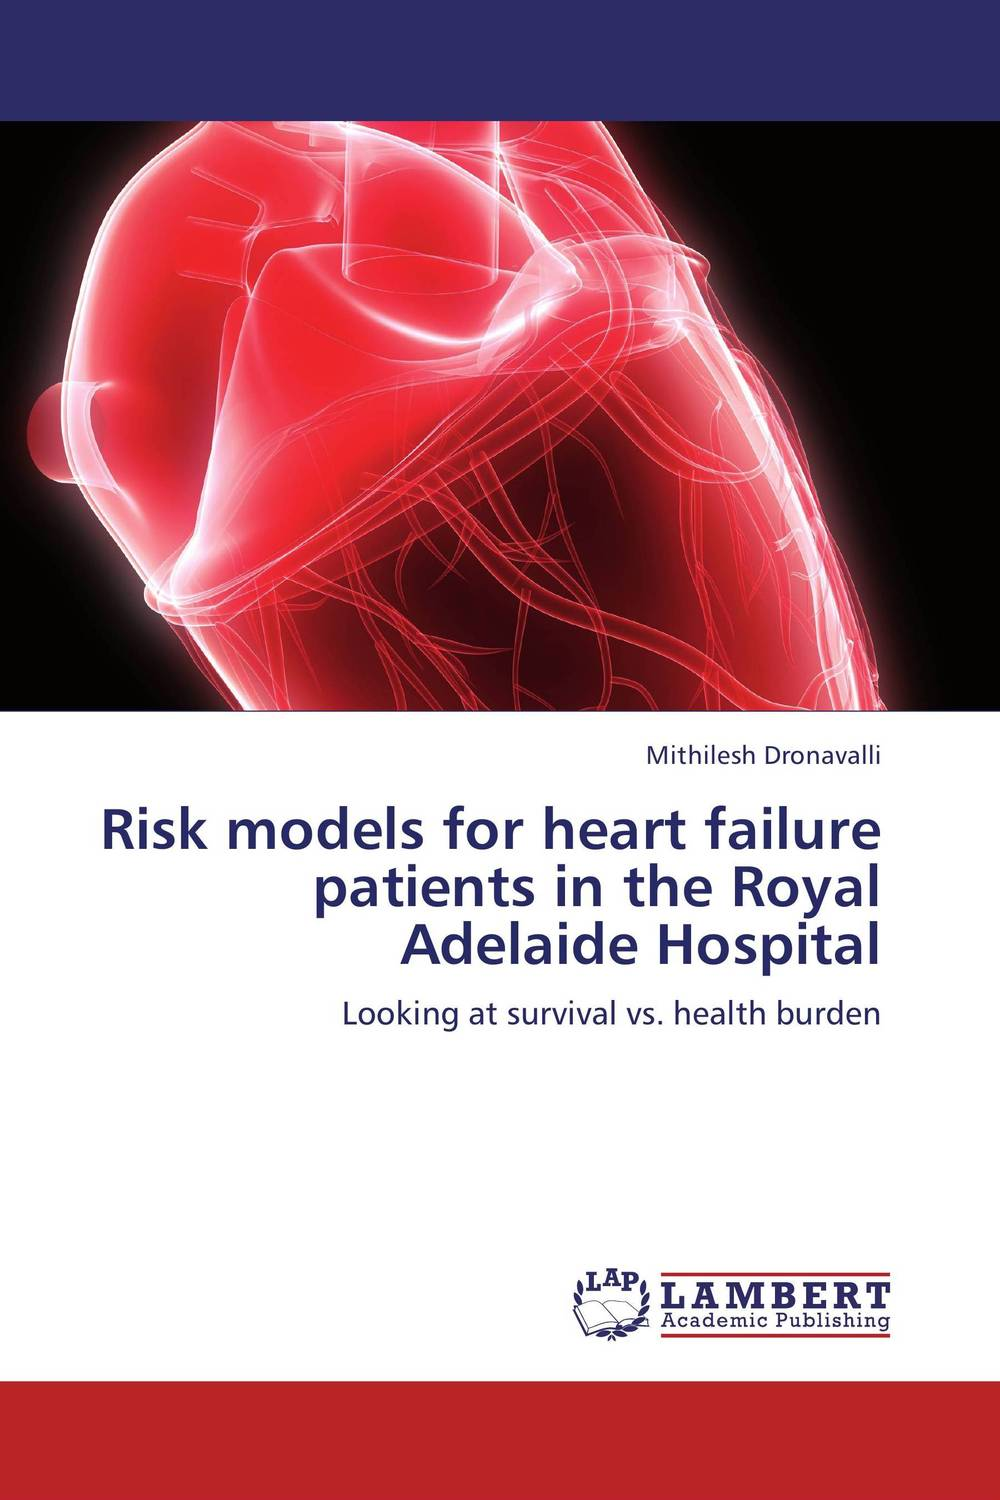 Risk models for heart failure patients in the Royal Adelaide Hospital michael rees business risk and simulation modelling in practice using excel vba and risk